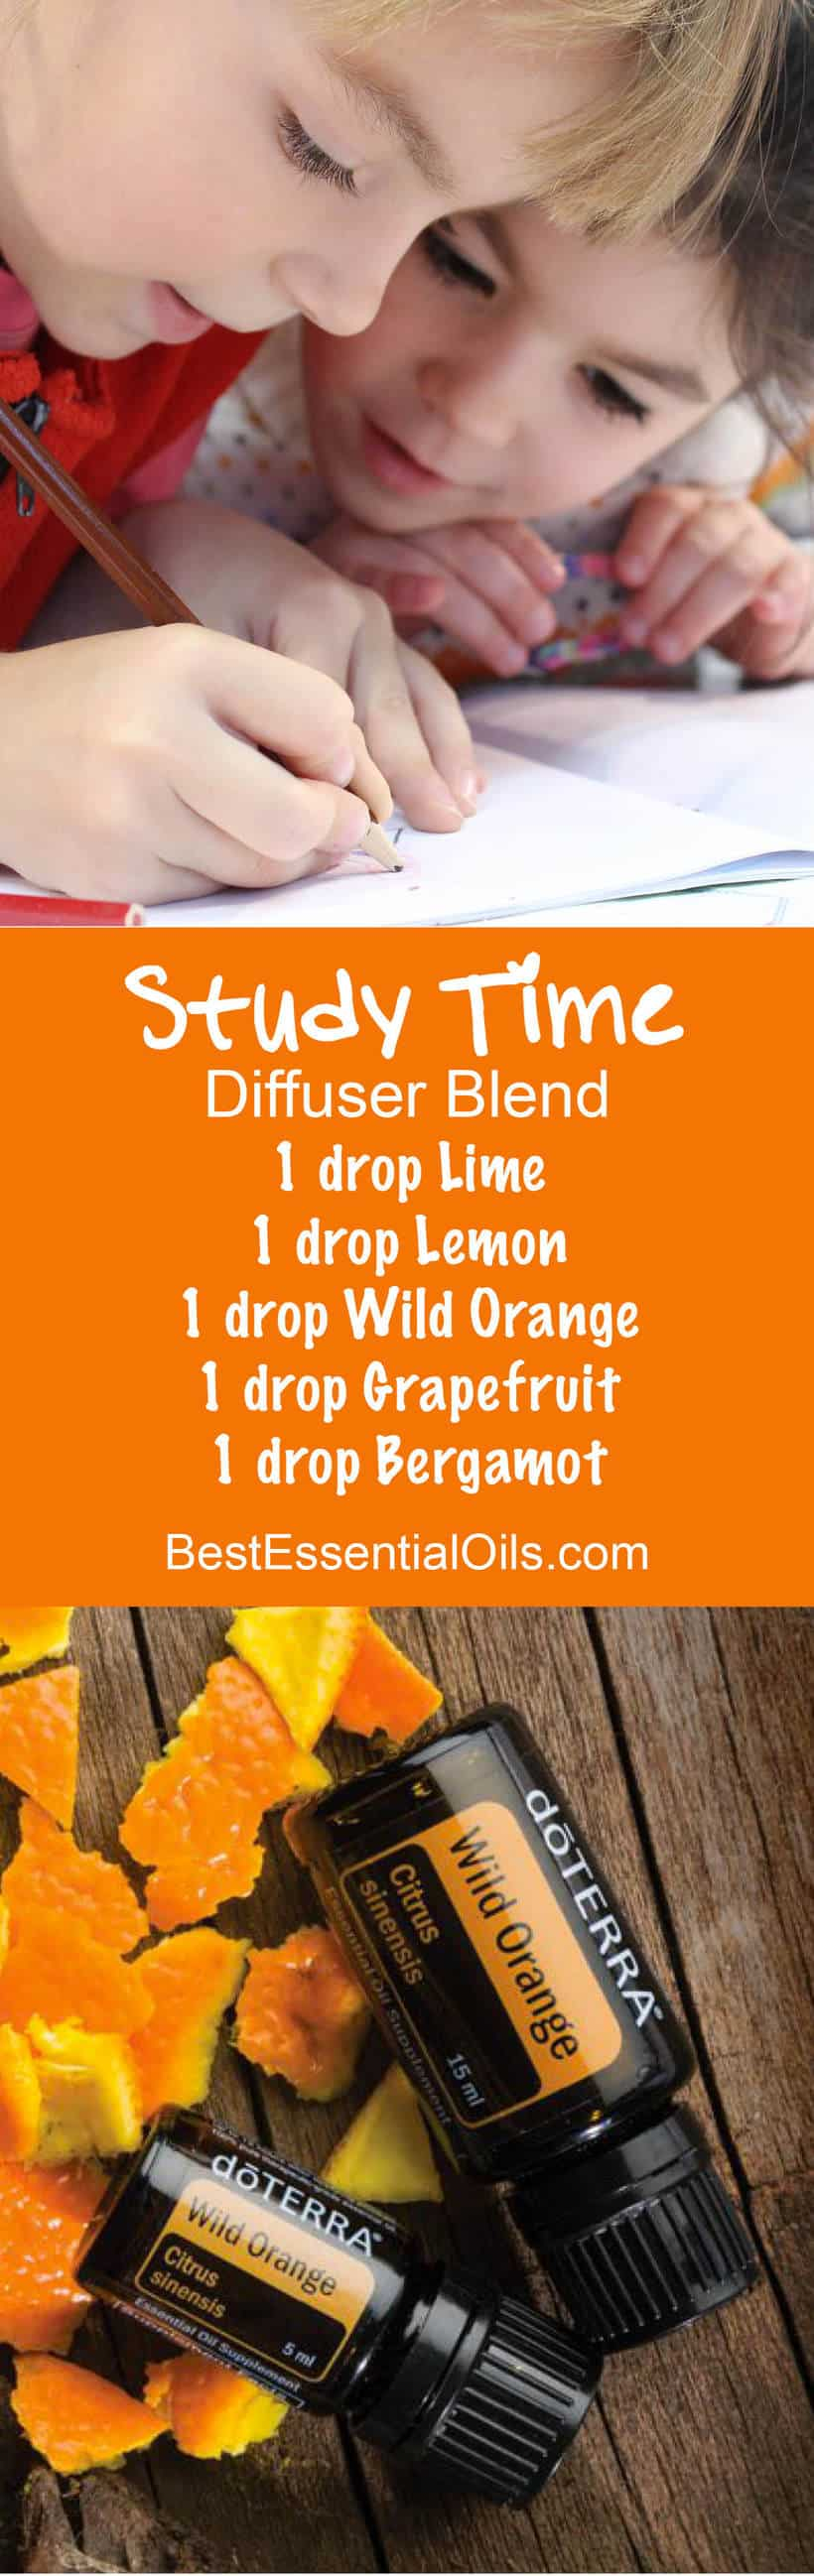 Study Time doTERRA Diffuser Blend